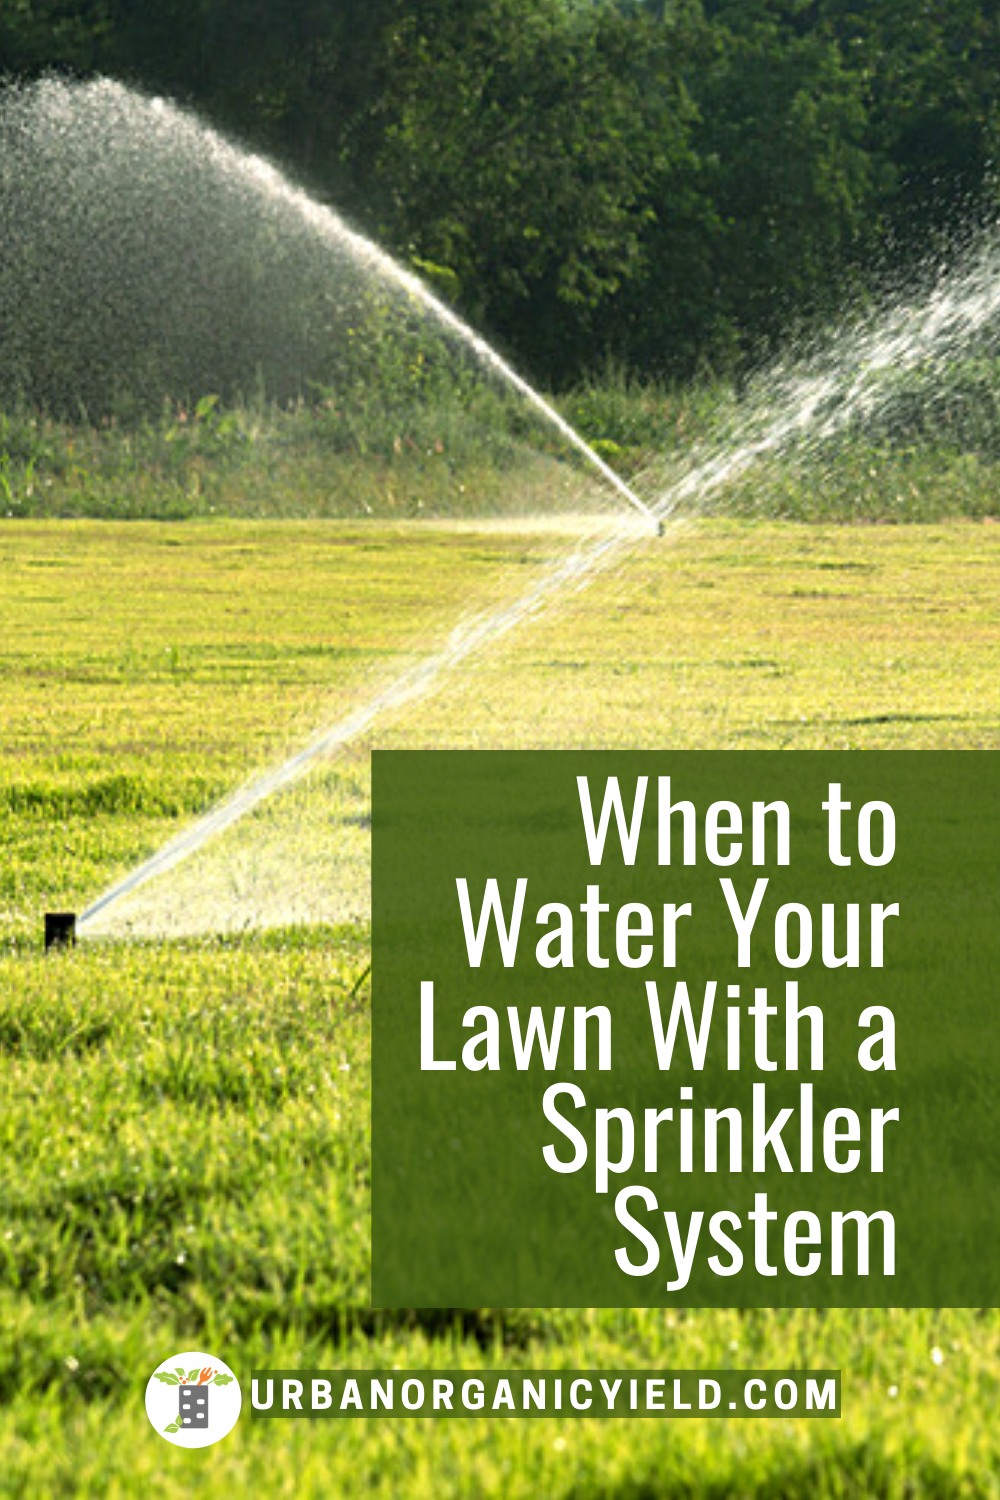 How Long Do I Water My Lawn With A Sprinkler System In 2021 Sprinkler System Sprinkler Lawn Sprinklers